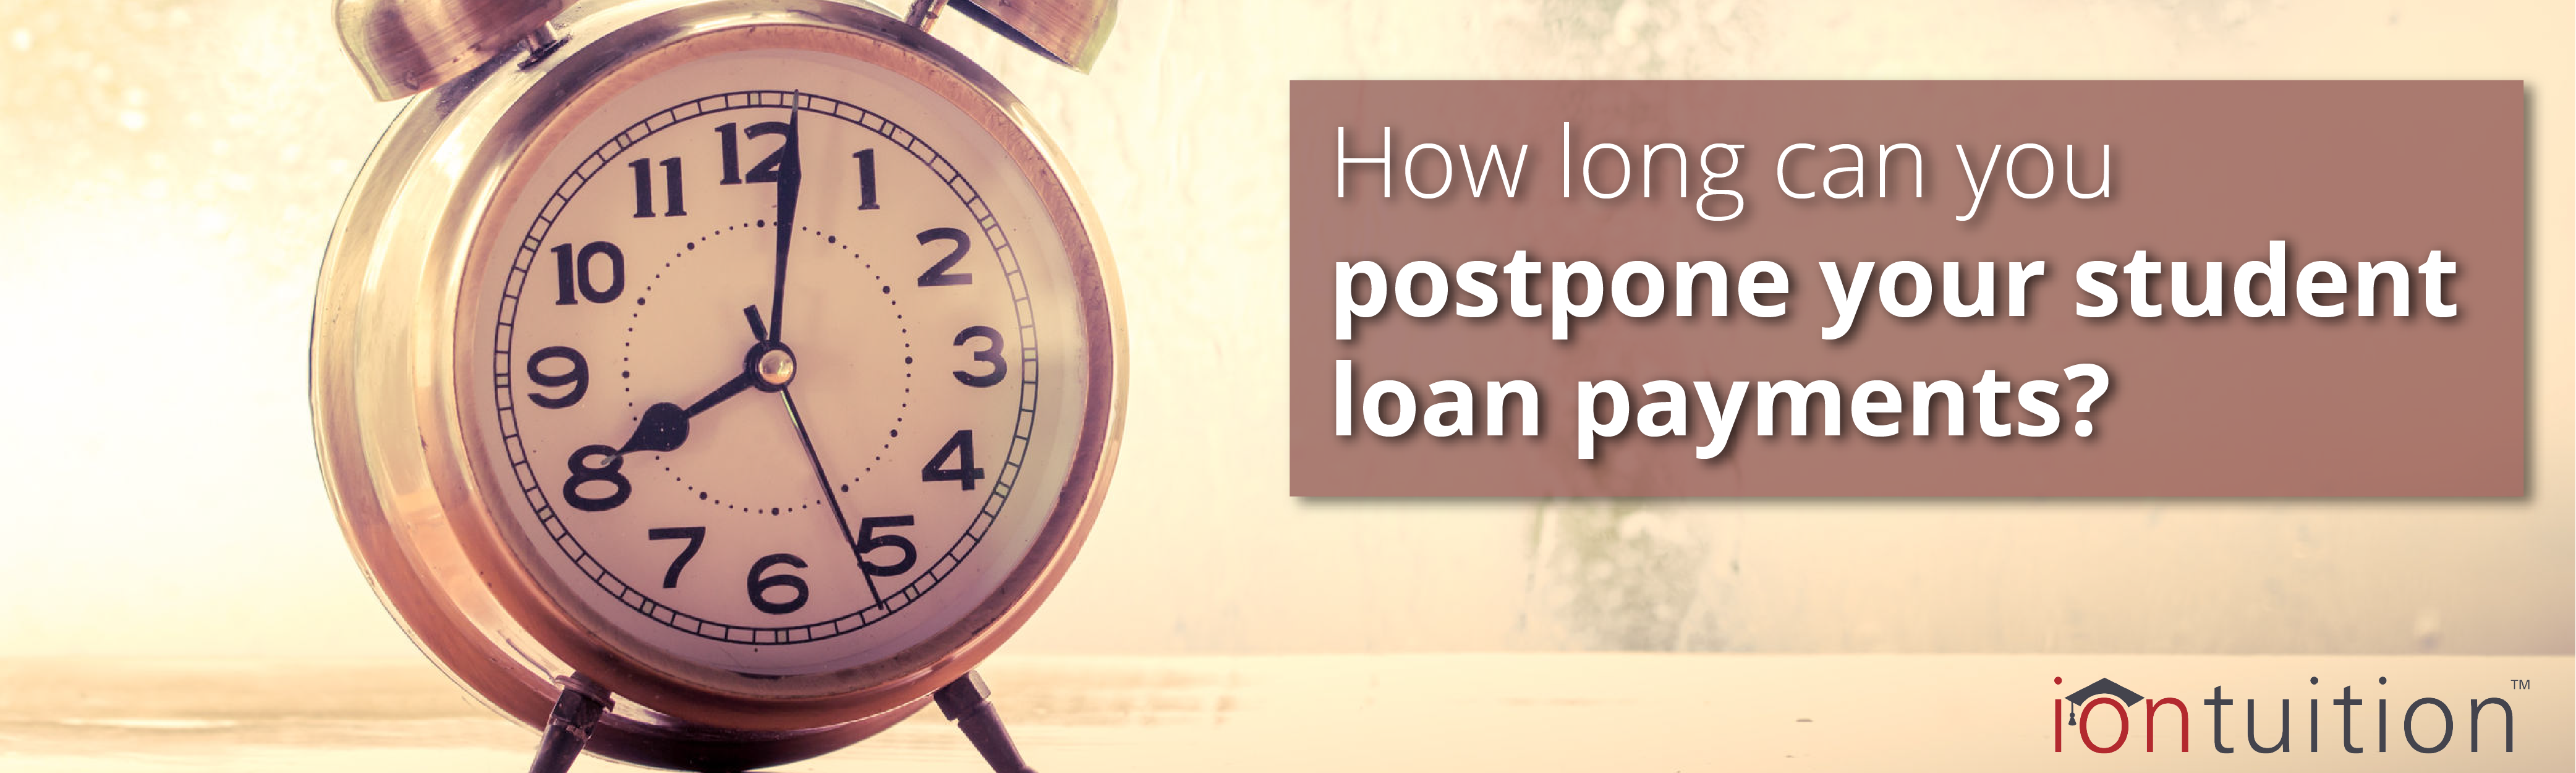 How Long Can you Postpone your Student Loan Payments?